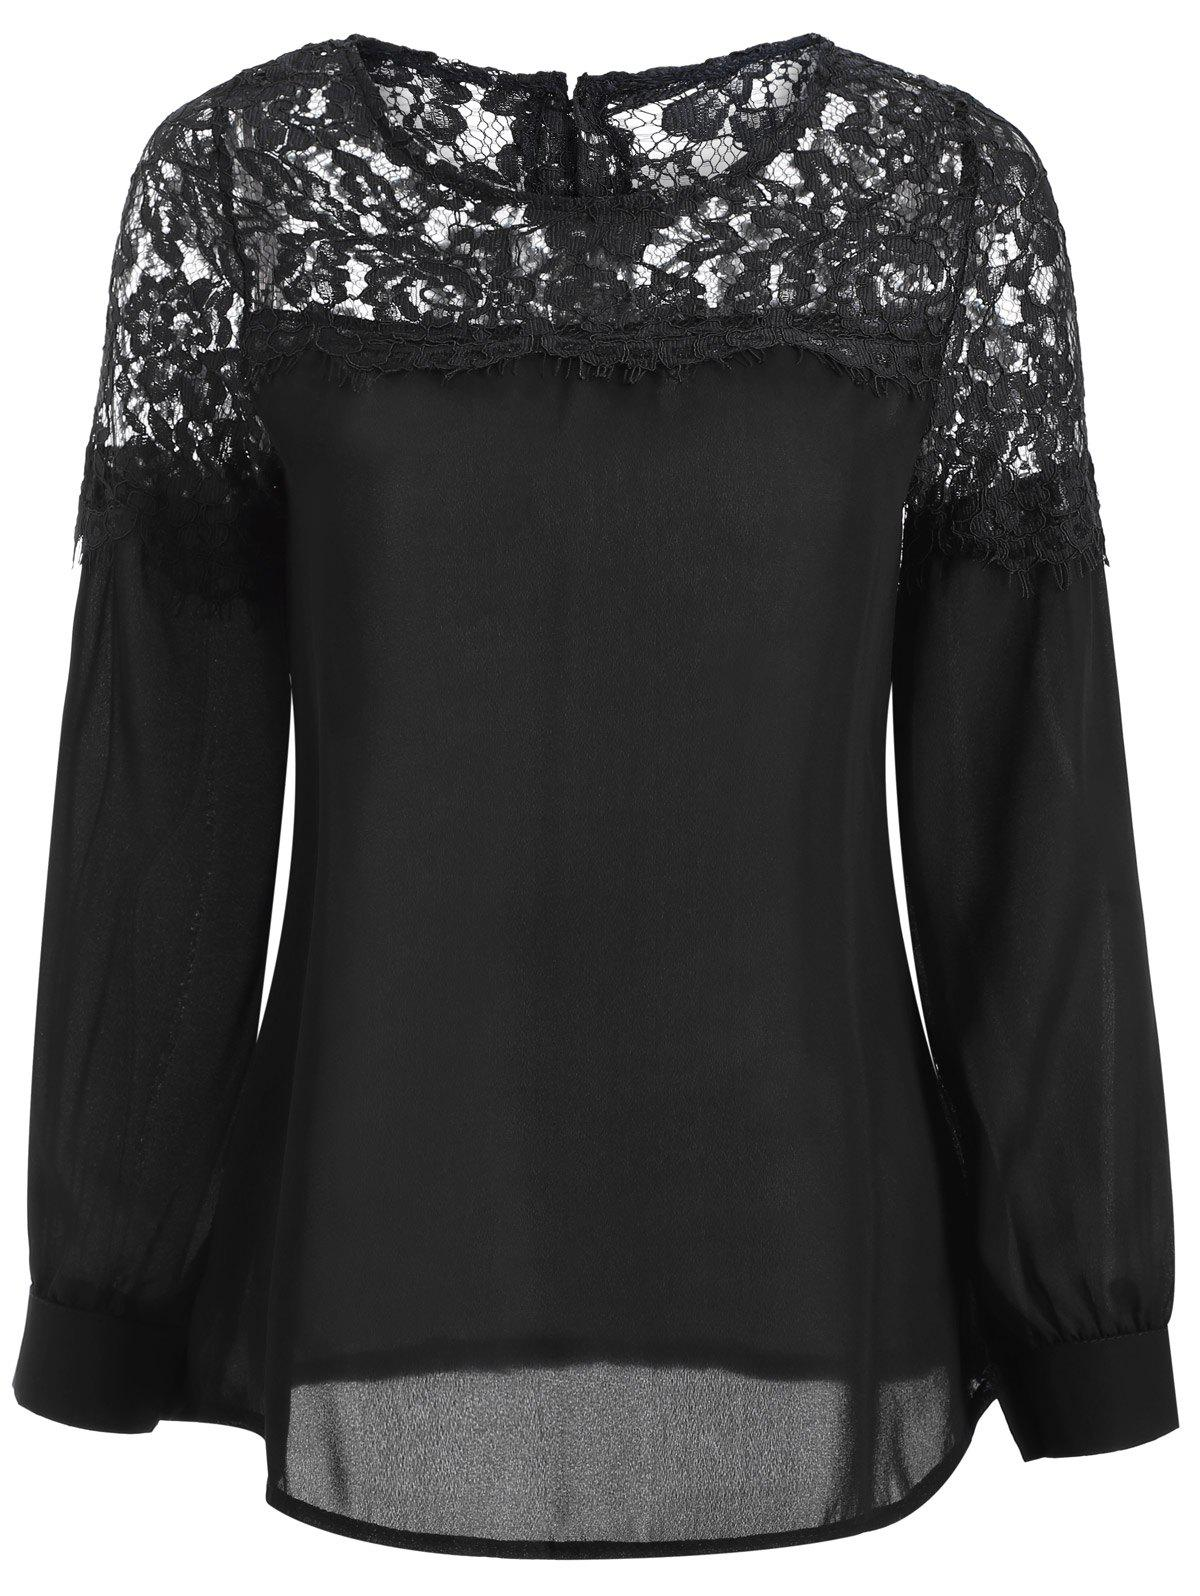 Sheer Lace Yoke BlouseWomen<br><br><br>Size: M<br>Color: BLACK